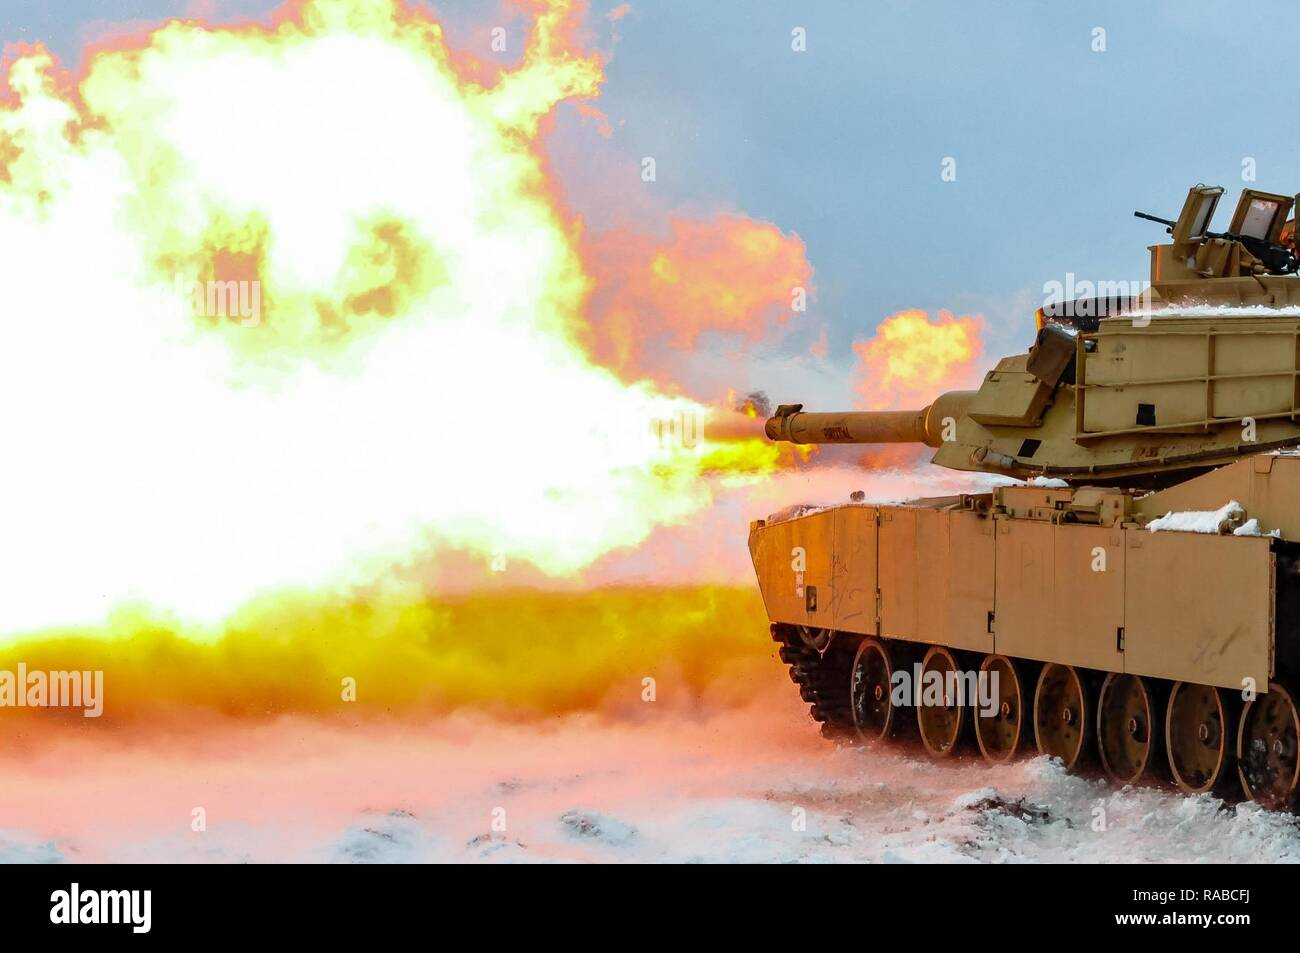 cb1175110f6 A round is fired from an M1A2 Main Battle Tank belonging to 1st ...